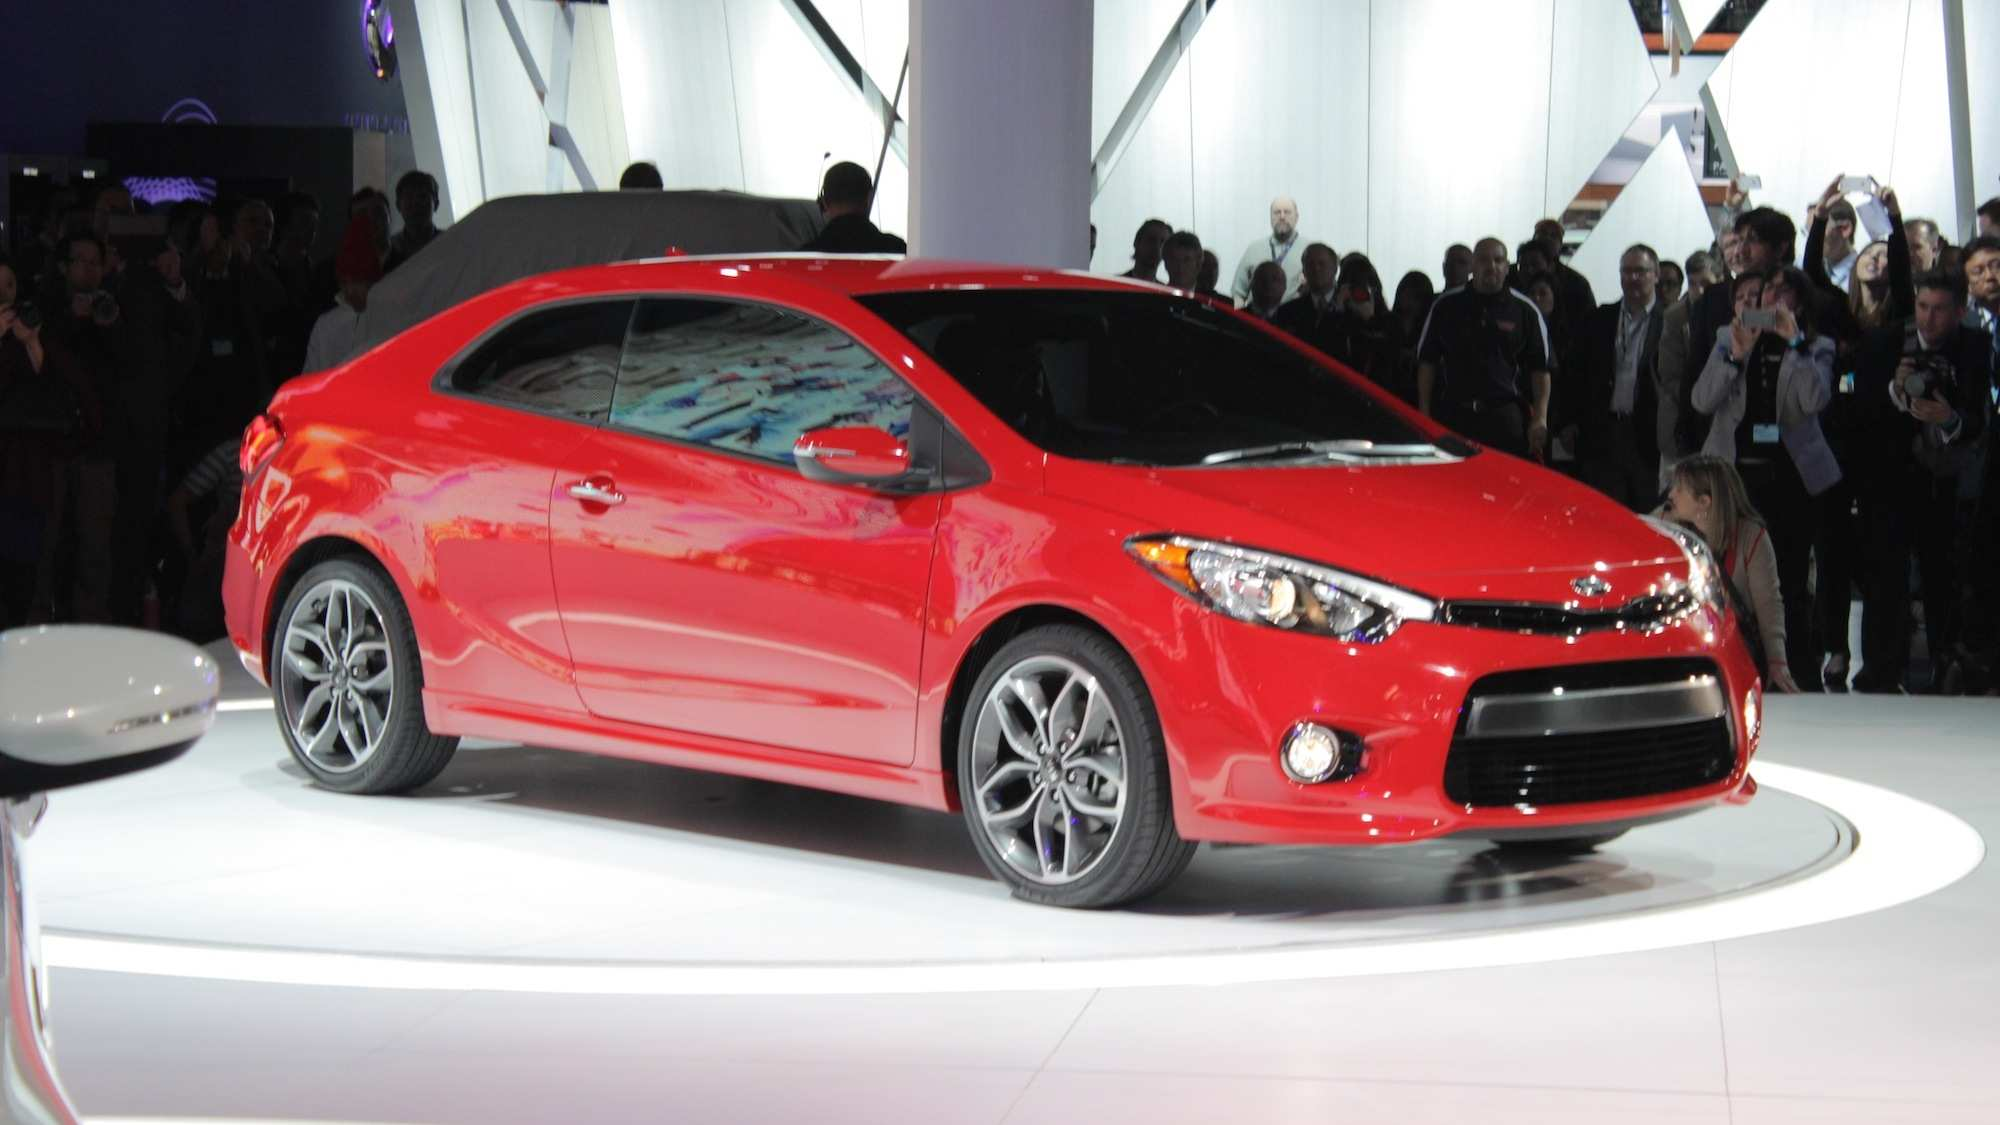 98 Gallery of Kia Koup 2020 History for Kia Koup 2020